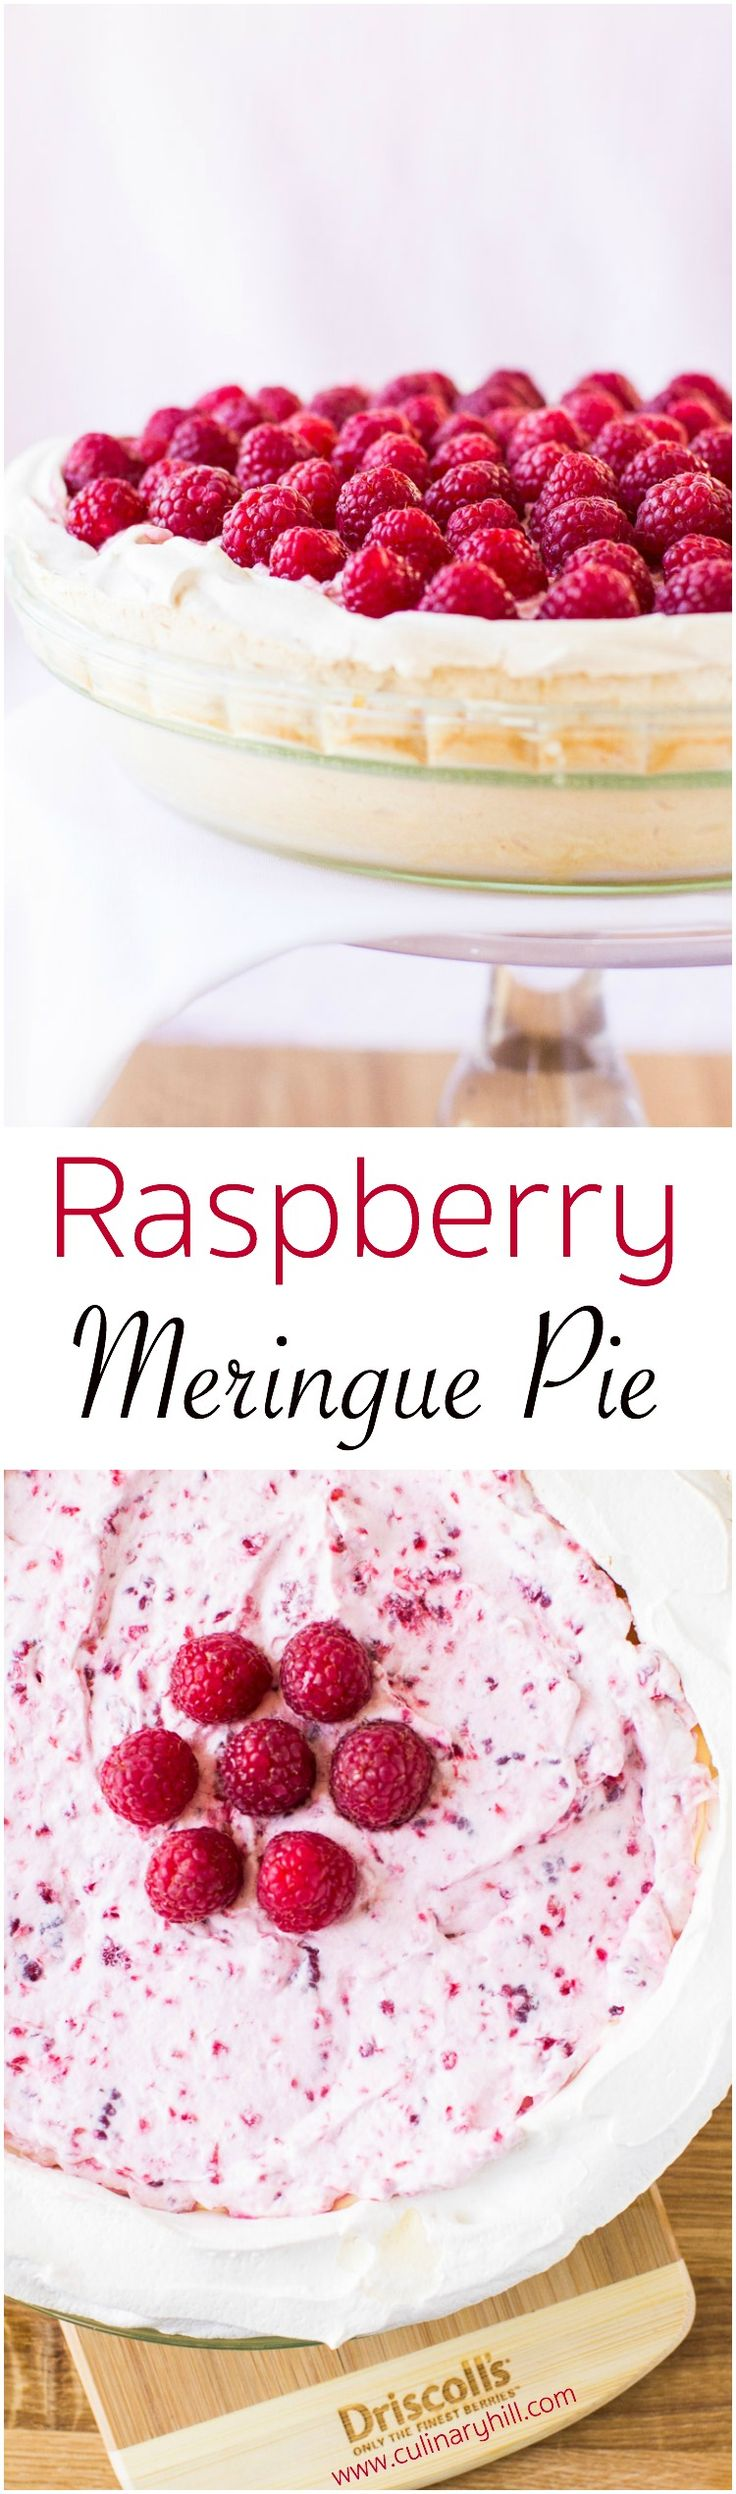 Showcase the first raspberries of spring with this luscious Raspberry Meringue Pie. A golden meringue crust is filled with a creamy lemon custard, then topped with sweetened berries folded into whipped cream. Naturally gluten free. #springwithdriscolls #berriesofspring